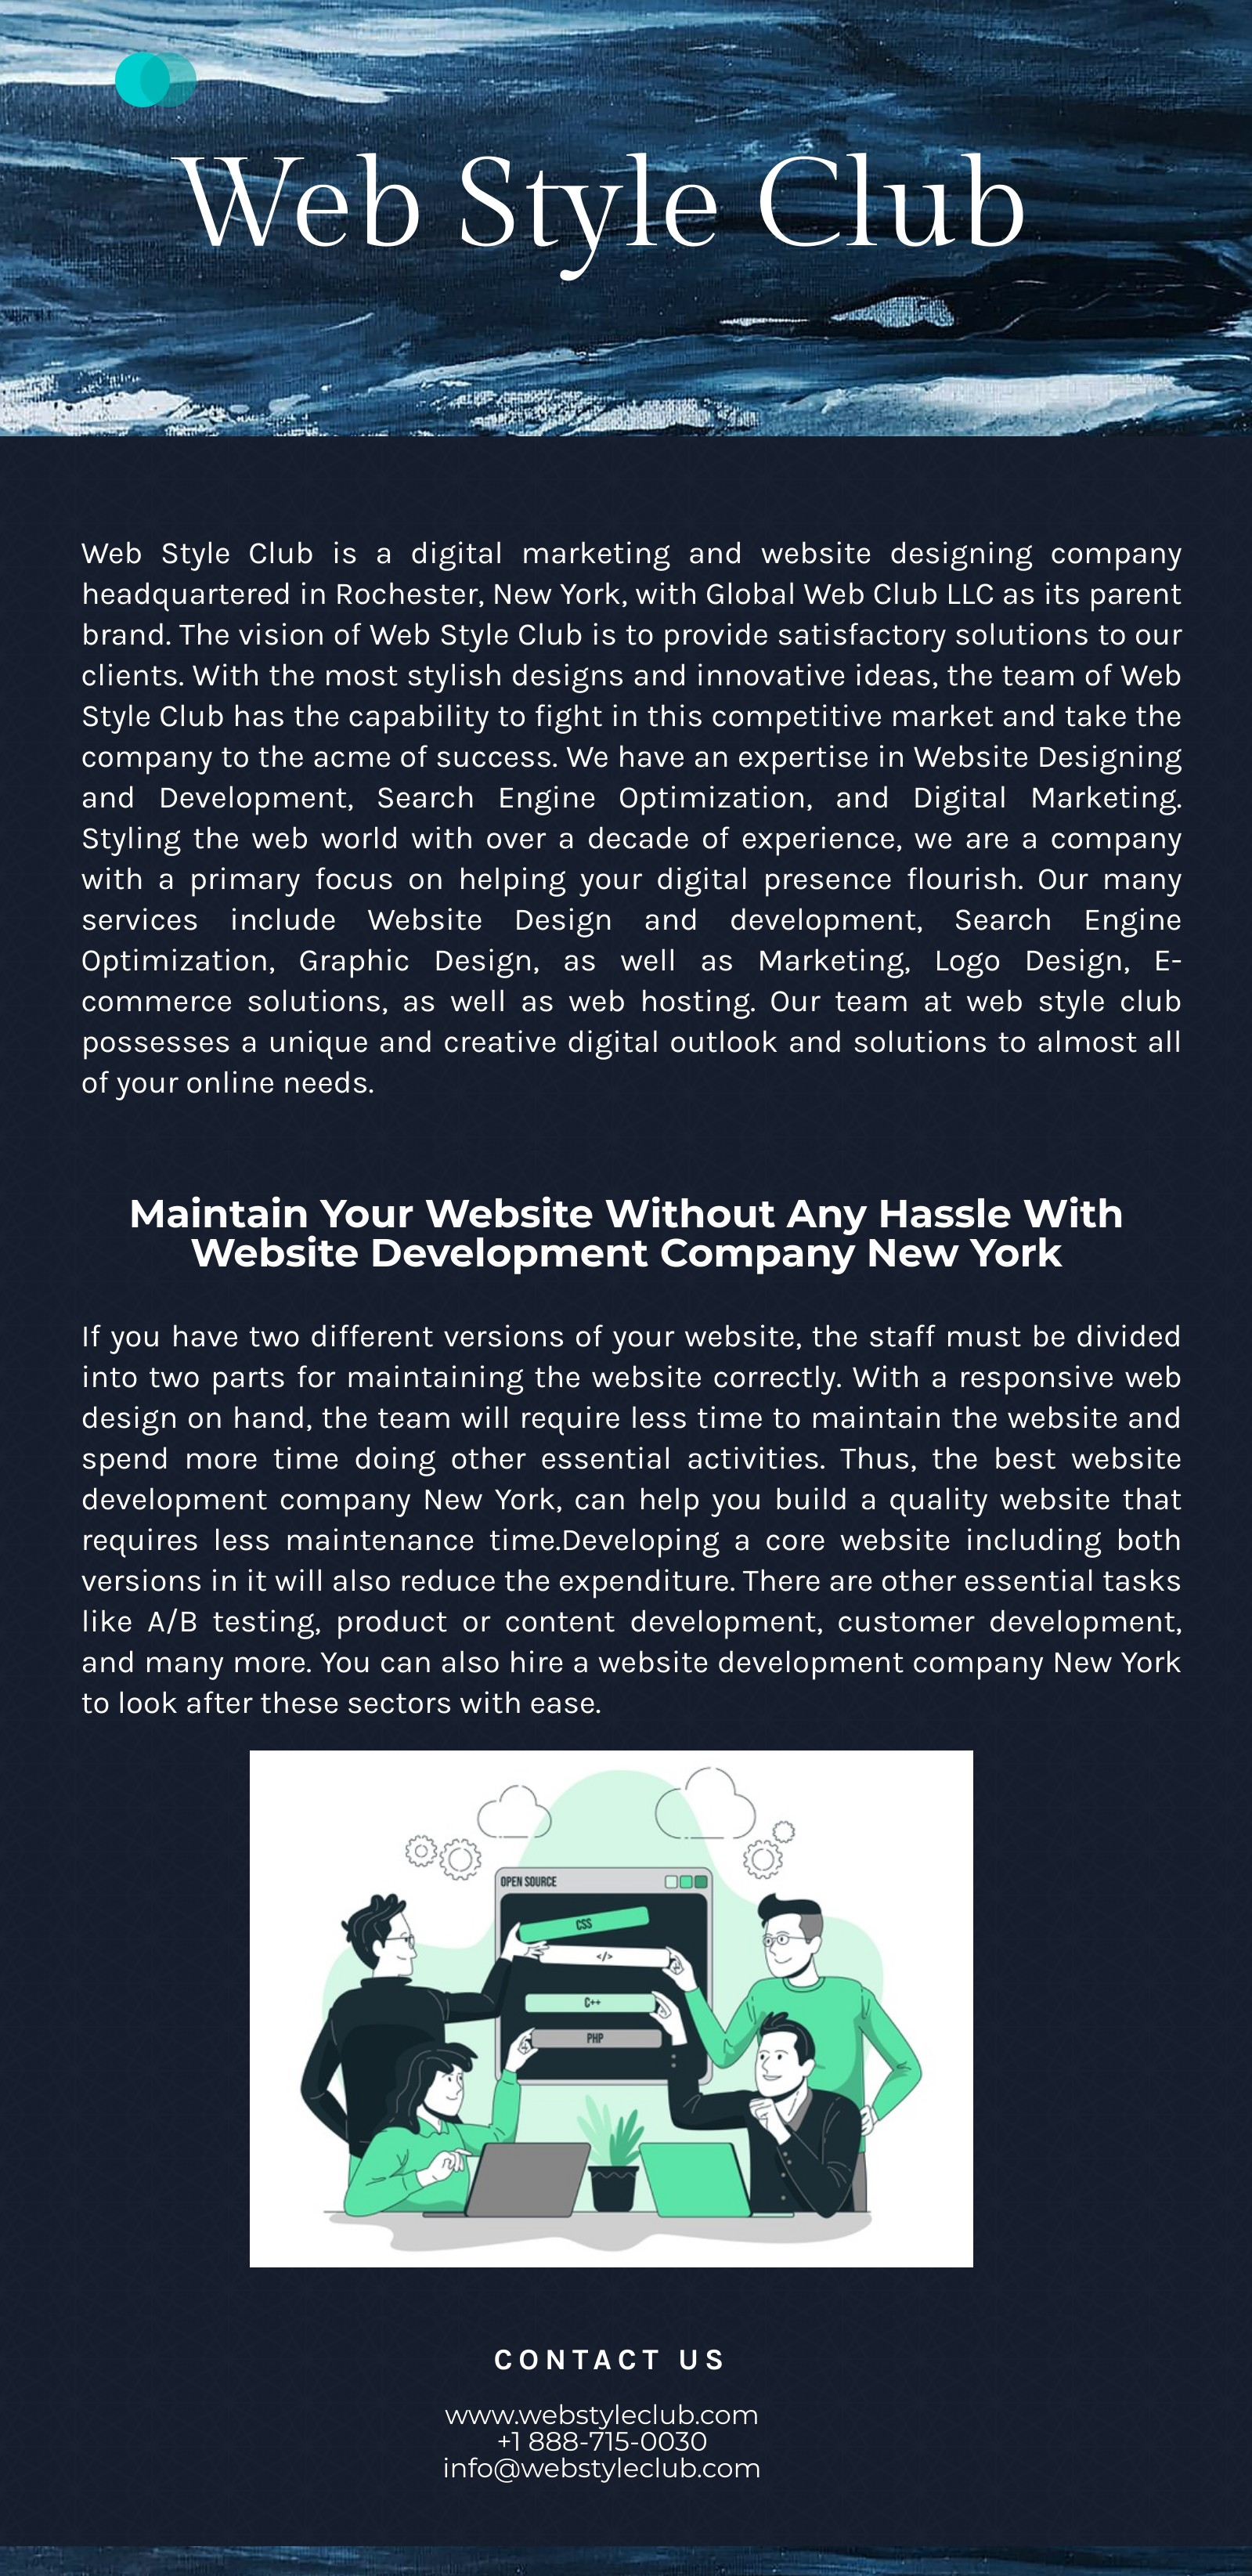 Reduce the penalty risk of duplicate content with web development in New York